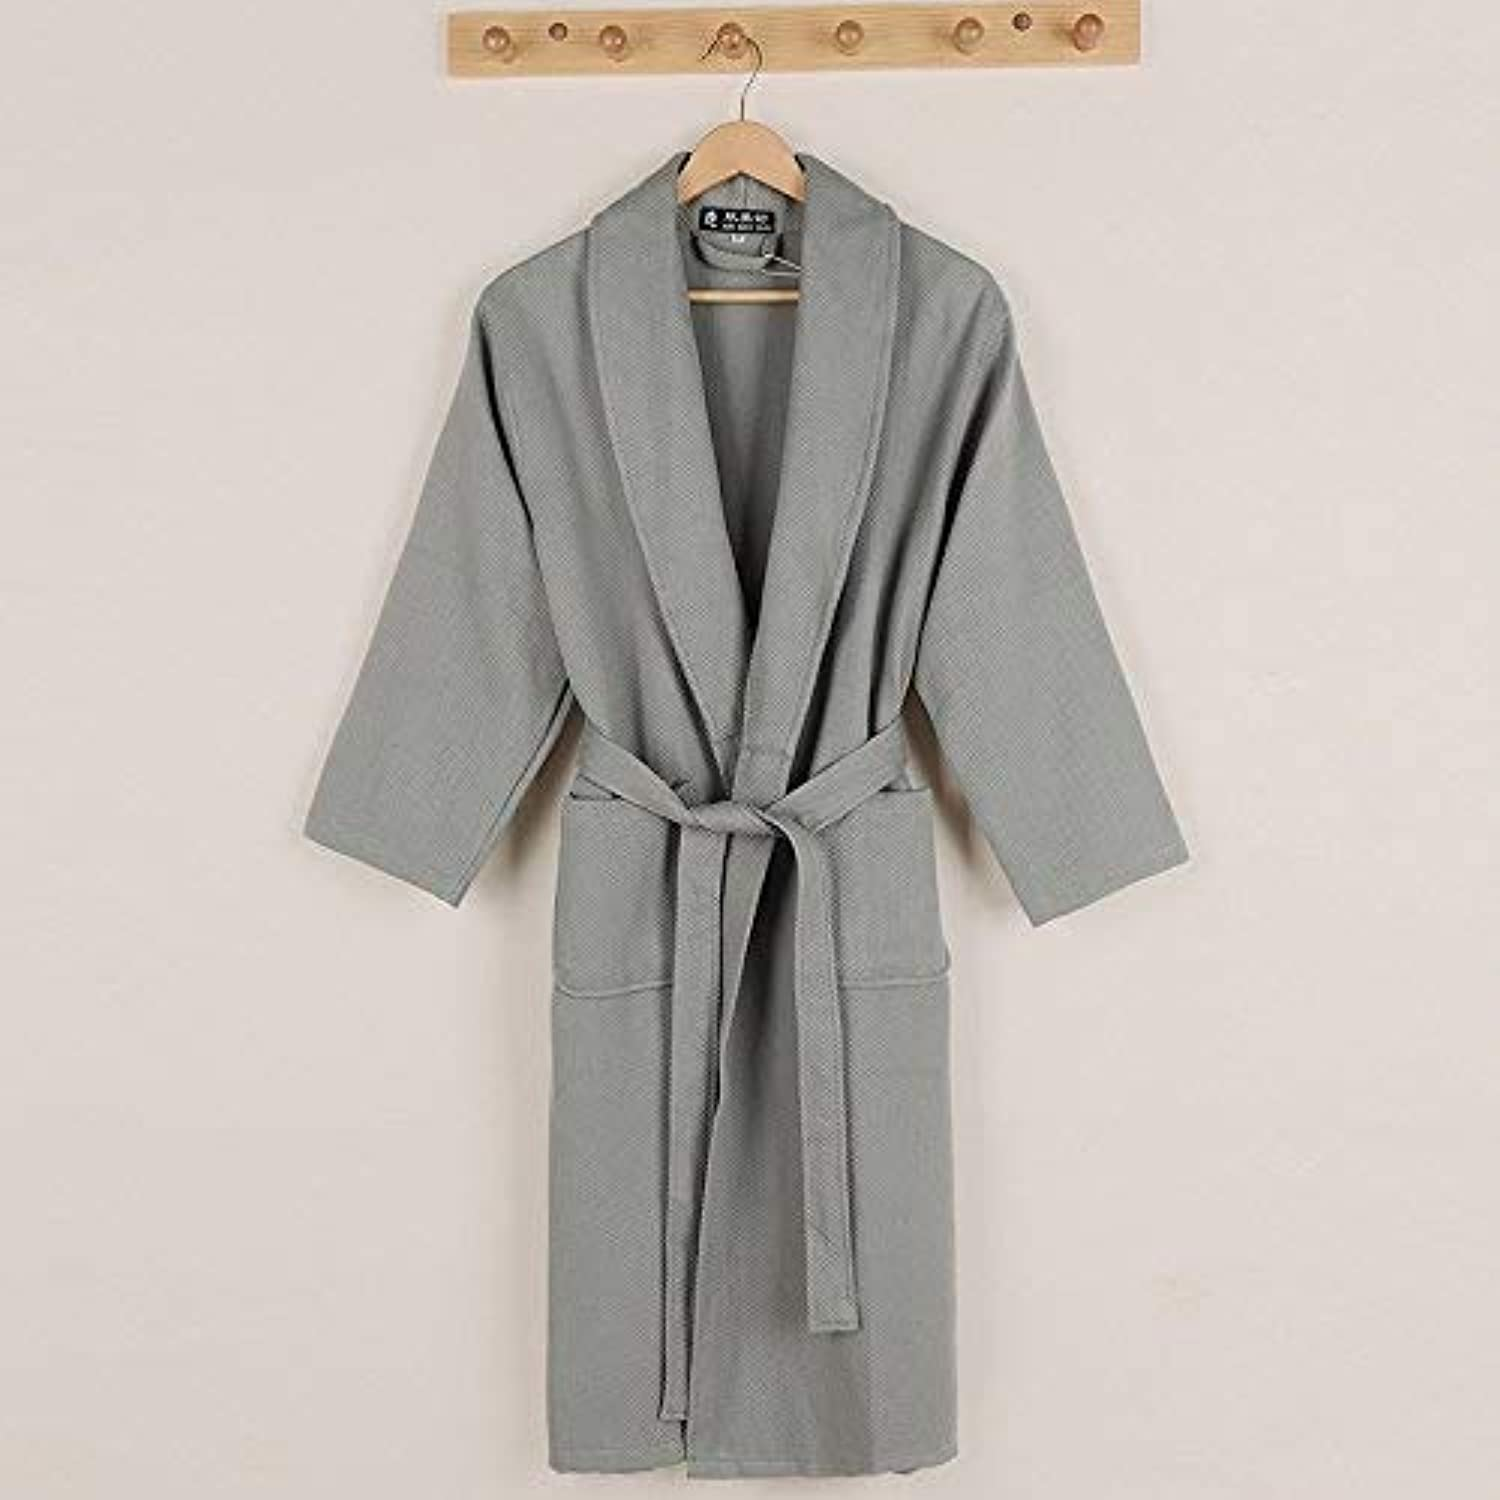 Pyjamas, Cotton Bathrobes Spring and Autumn Thickening Pajamas Couple Long Home Service (color   Grey, Size   S) (color   Grey, Size   S)